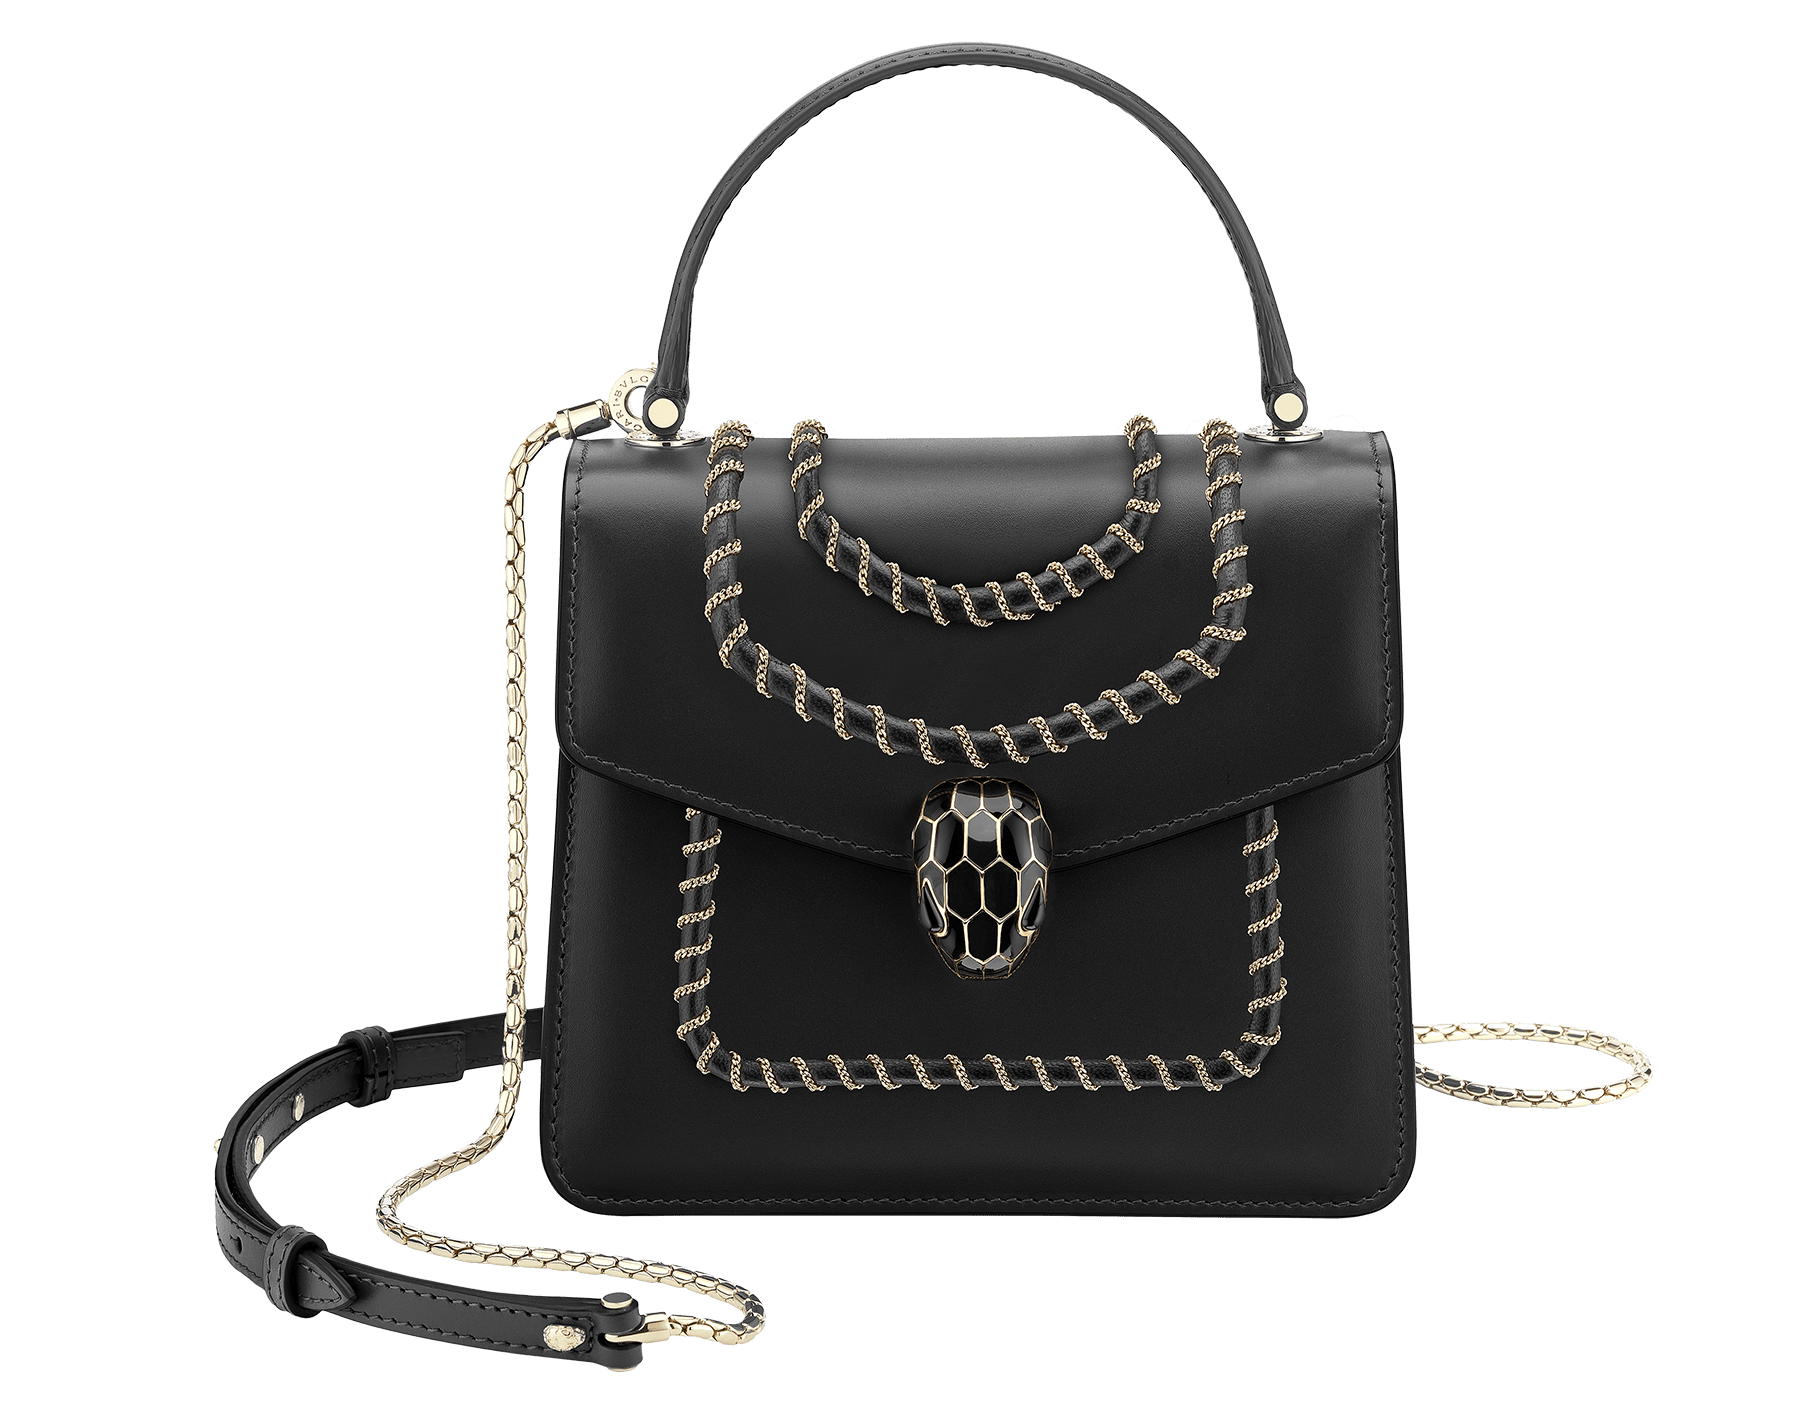 """Serpenti Forever"" crossbody bag in black calf leather, featuring a Woven Chain motif. Iconic snakehead closure in light gold plated brass enriched with shiny black enamel and black onyx eyes 287628 image 1"